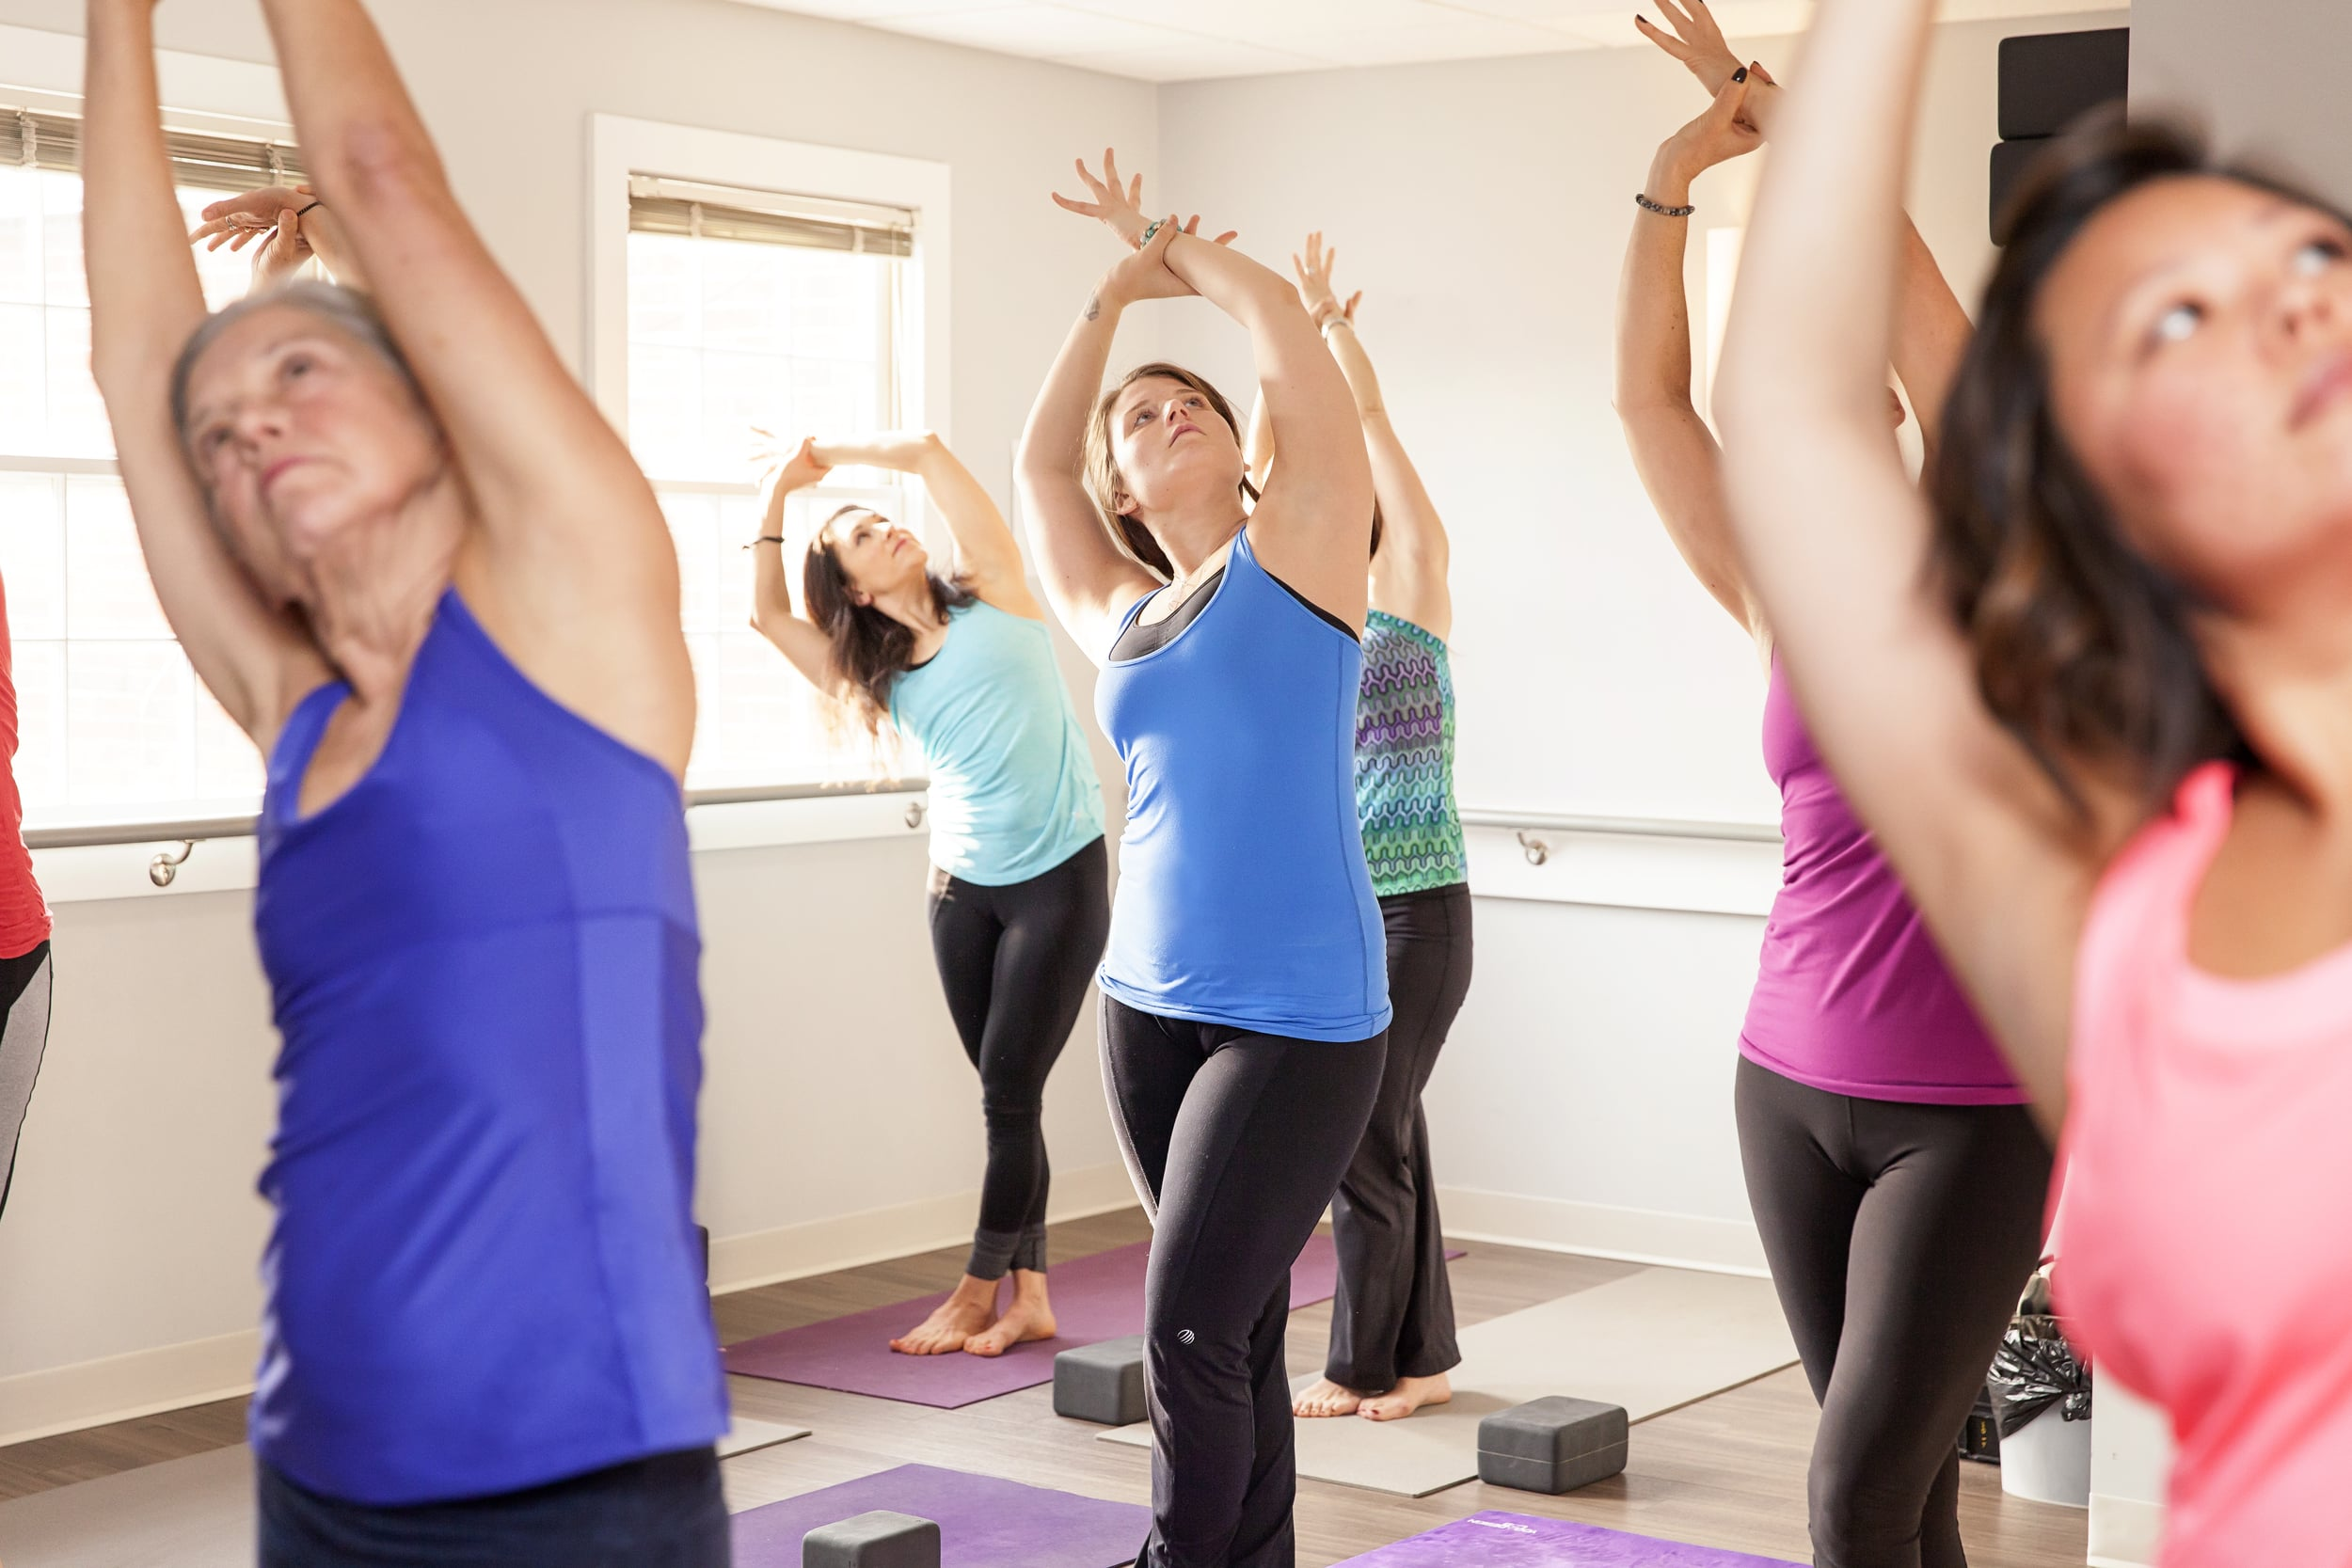 New to Yoga? New to Lexington Power? Come practice with us!